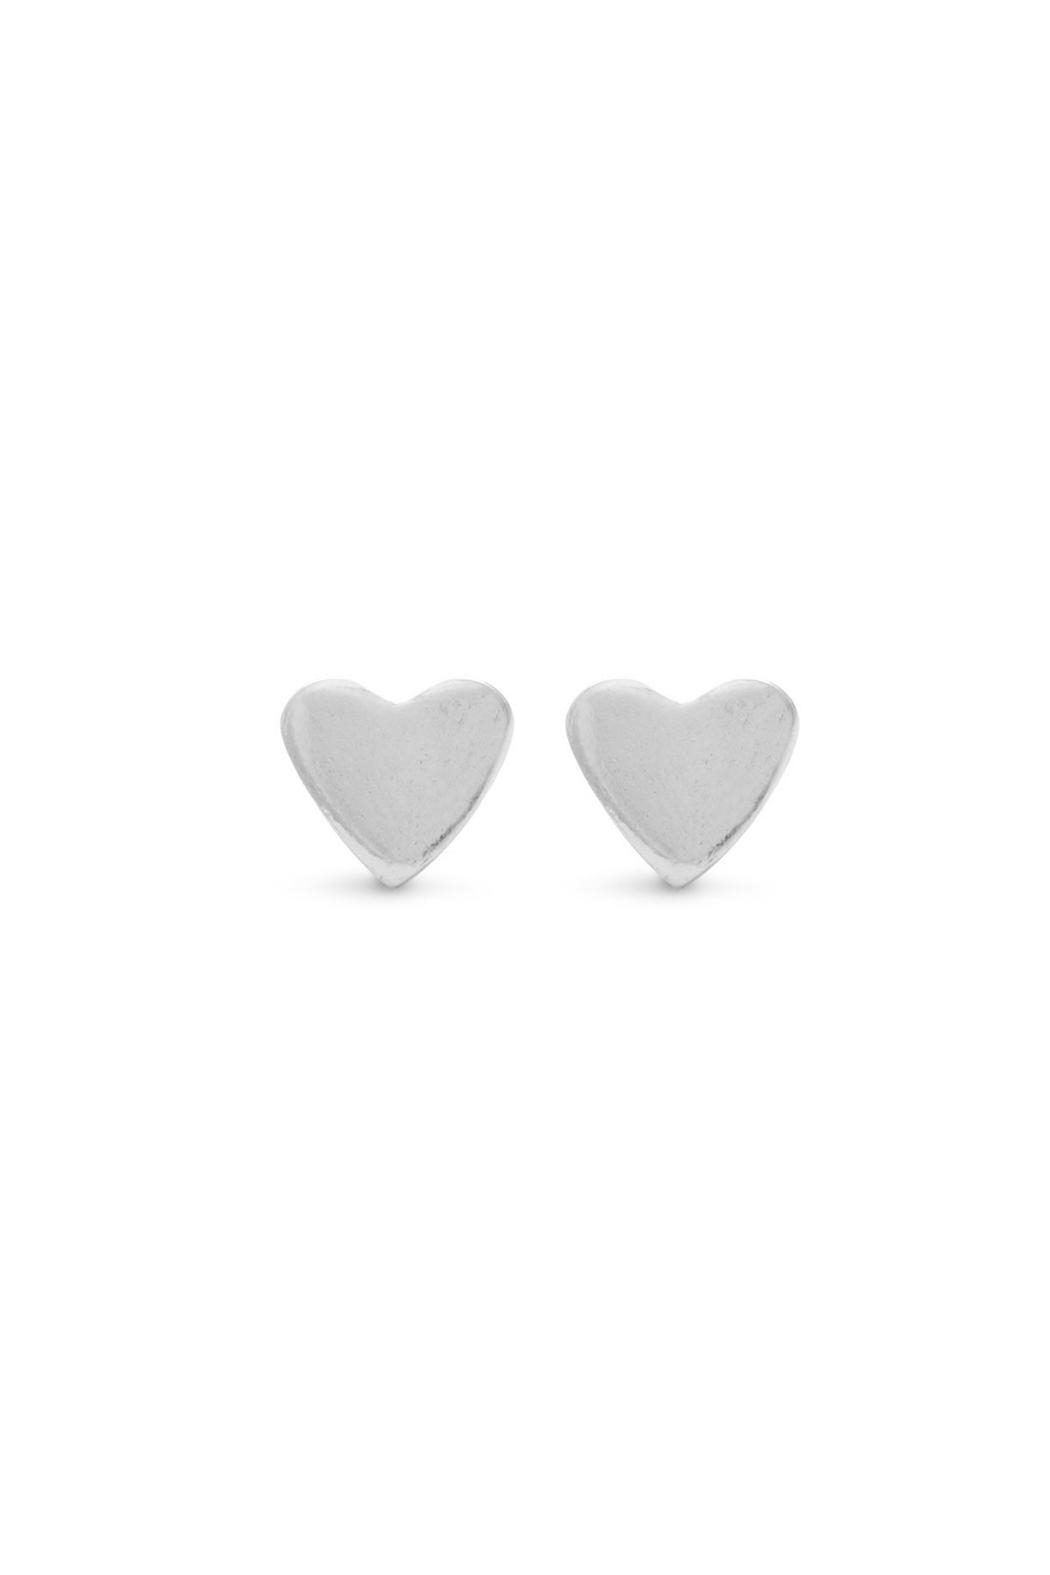 Wild Lilies Jewelry  Silver Heart Studs - Main Image